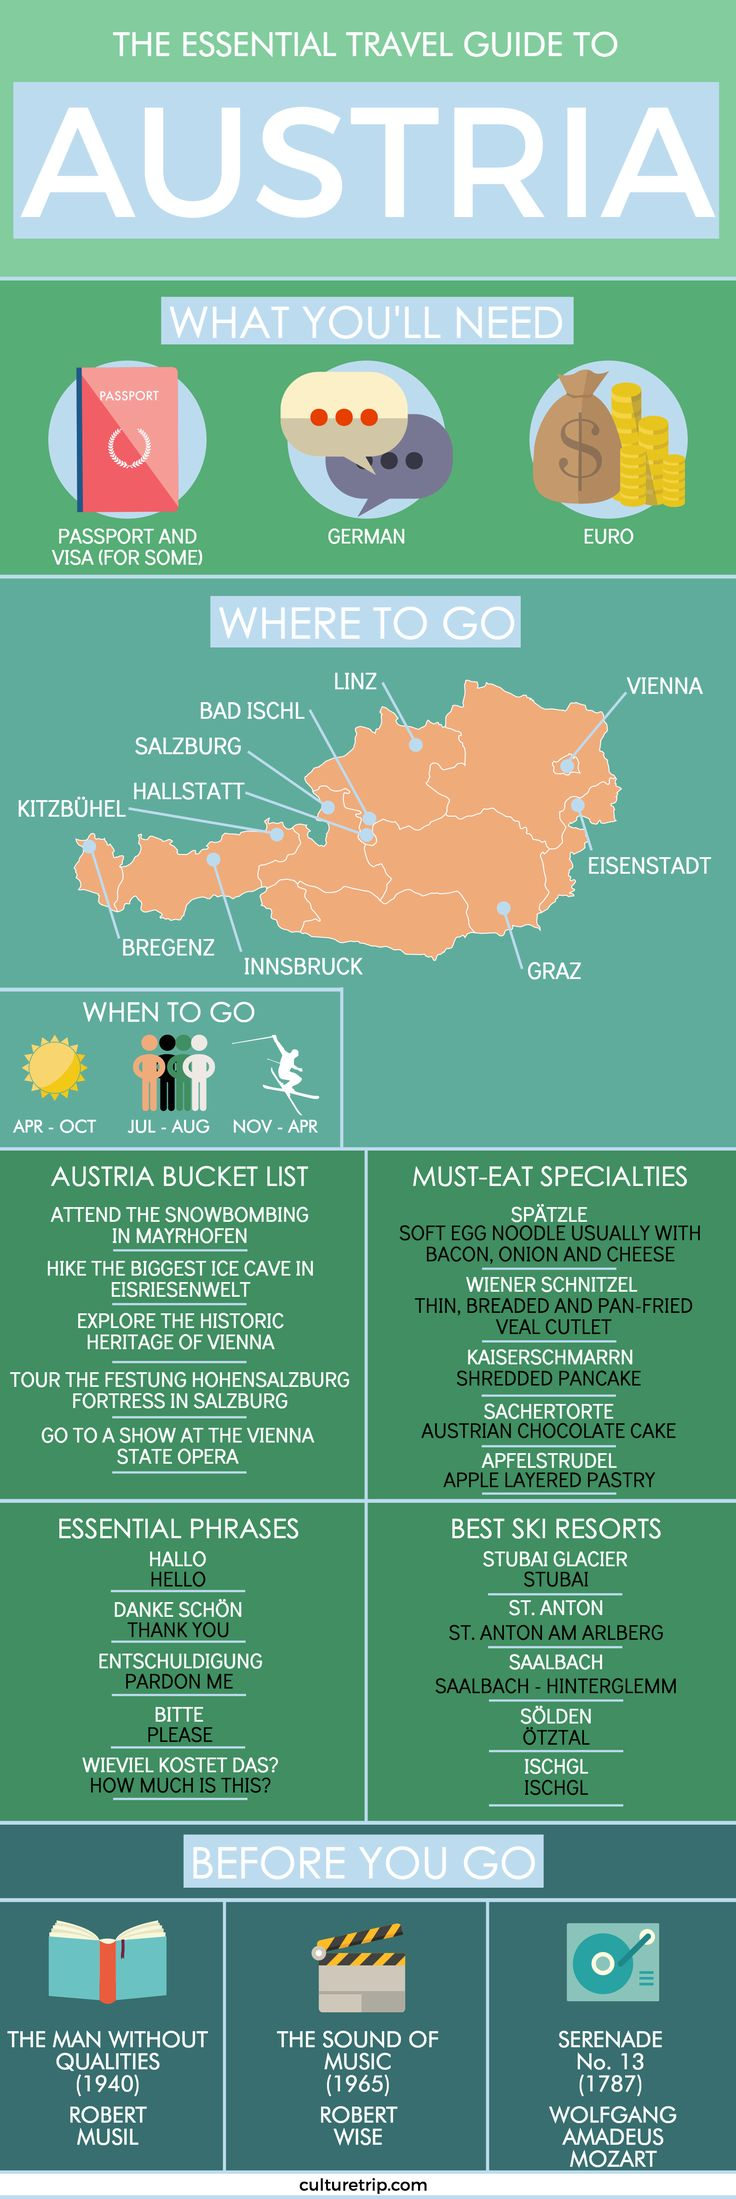 The Essential Travel Guide To Austria (Infographic)